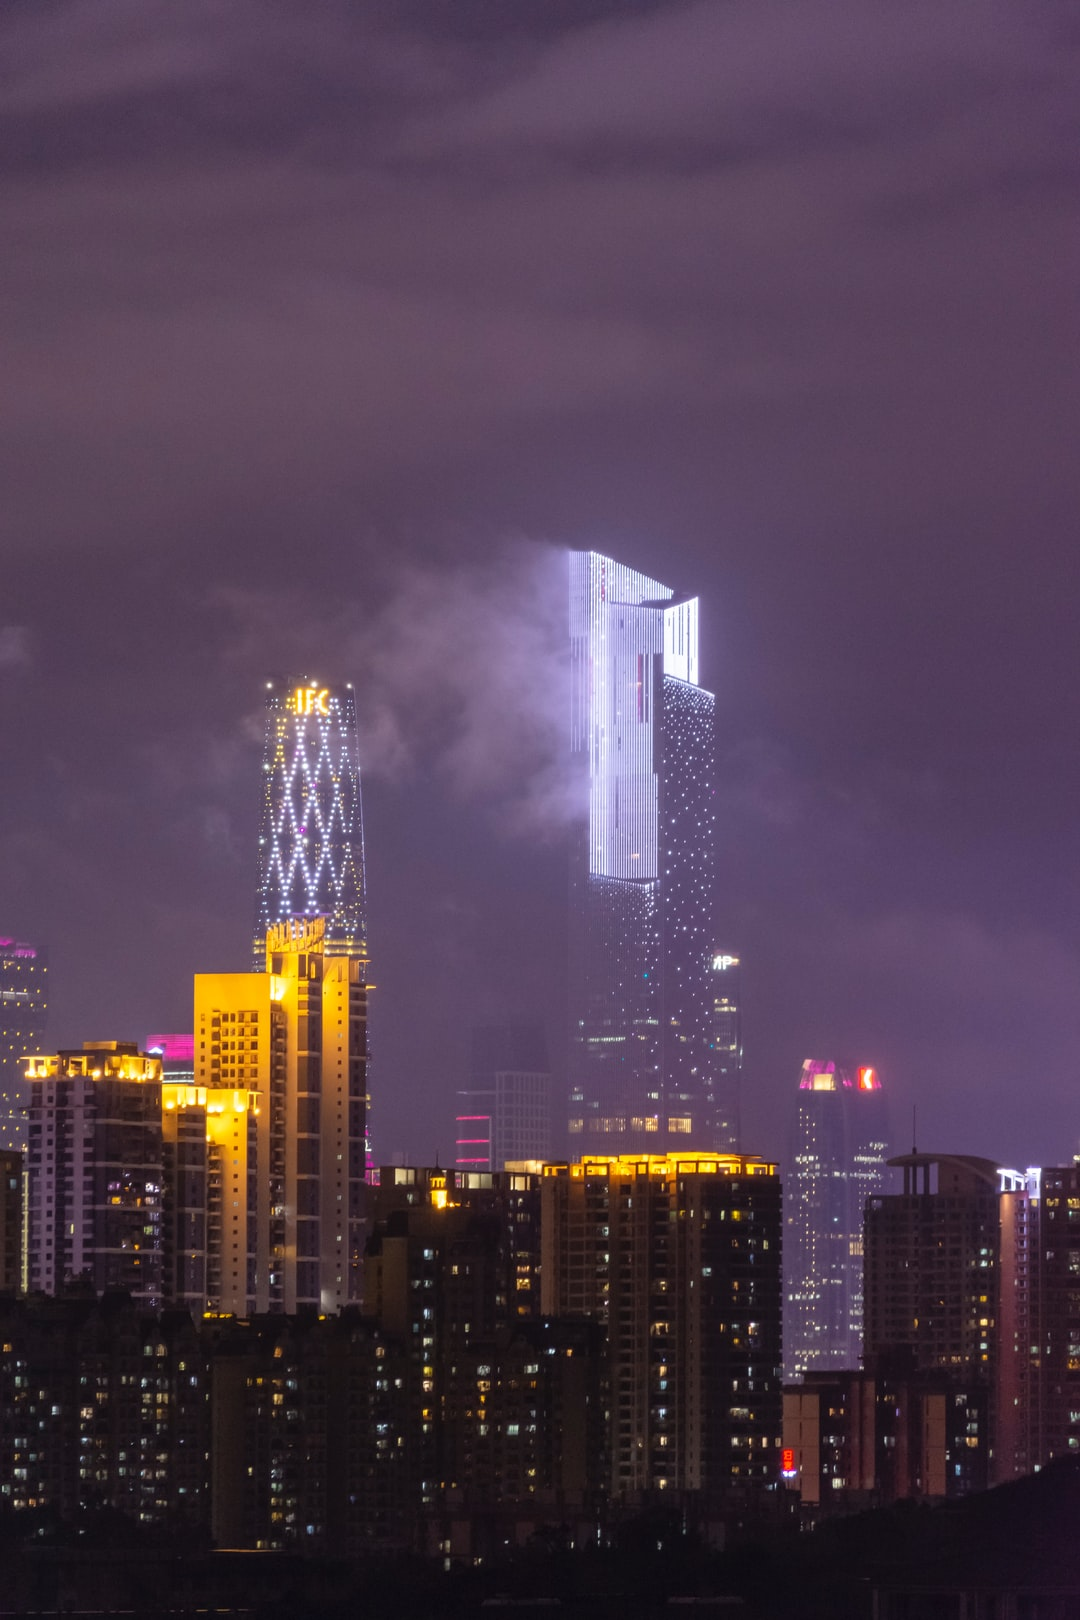 IFC (The West Tower) and Chow Tai Fuk Centre (The East Tower) on a night after shower. The East Tower looked like a smoking crystal that shone brightly in the dark.